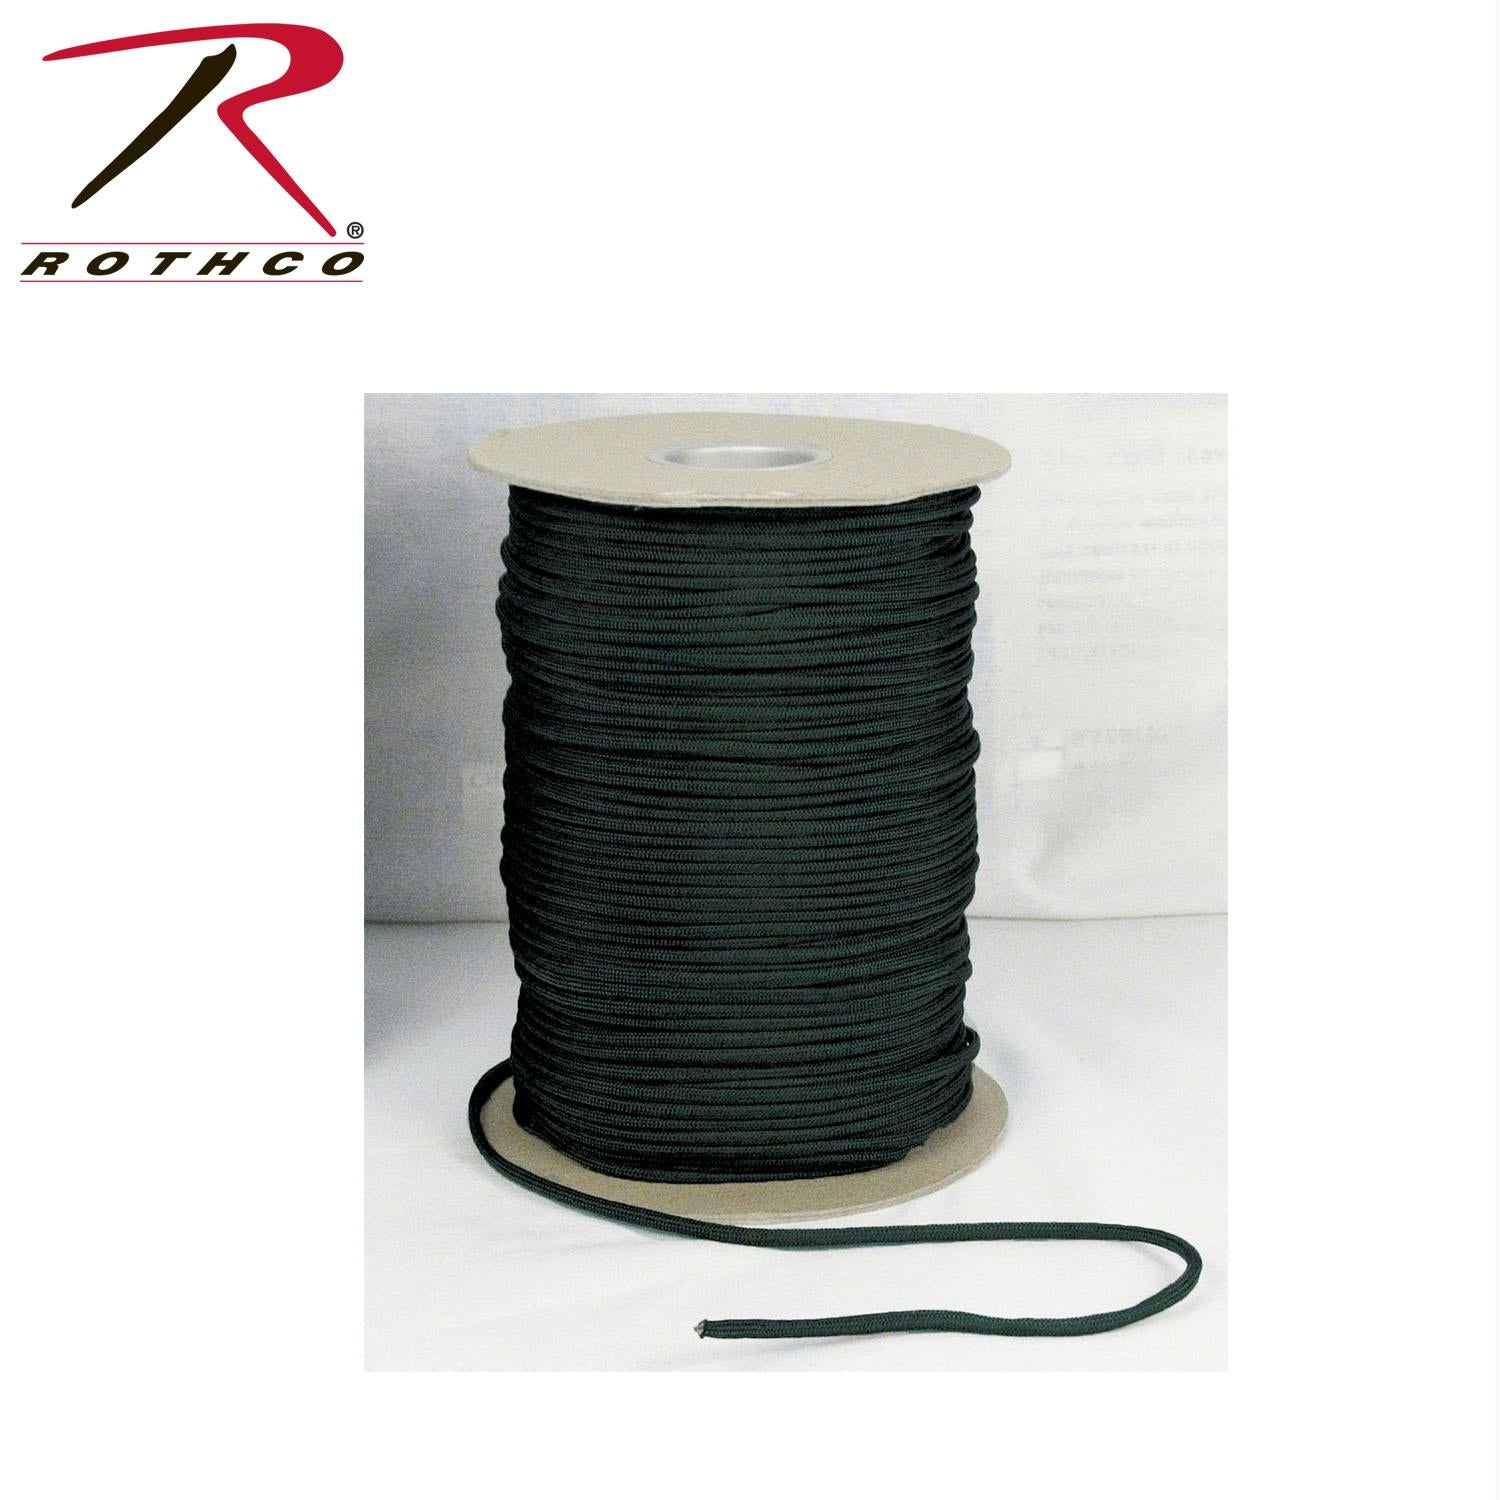 Rothco Nylon Paracord 550lb 1000 Ft Spool - Black